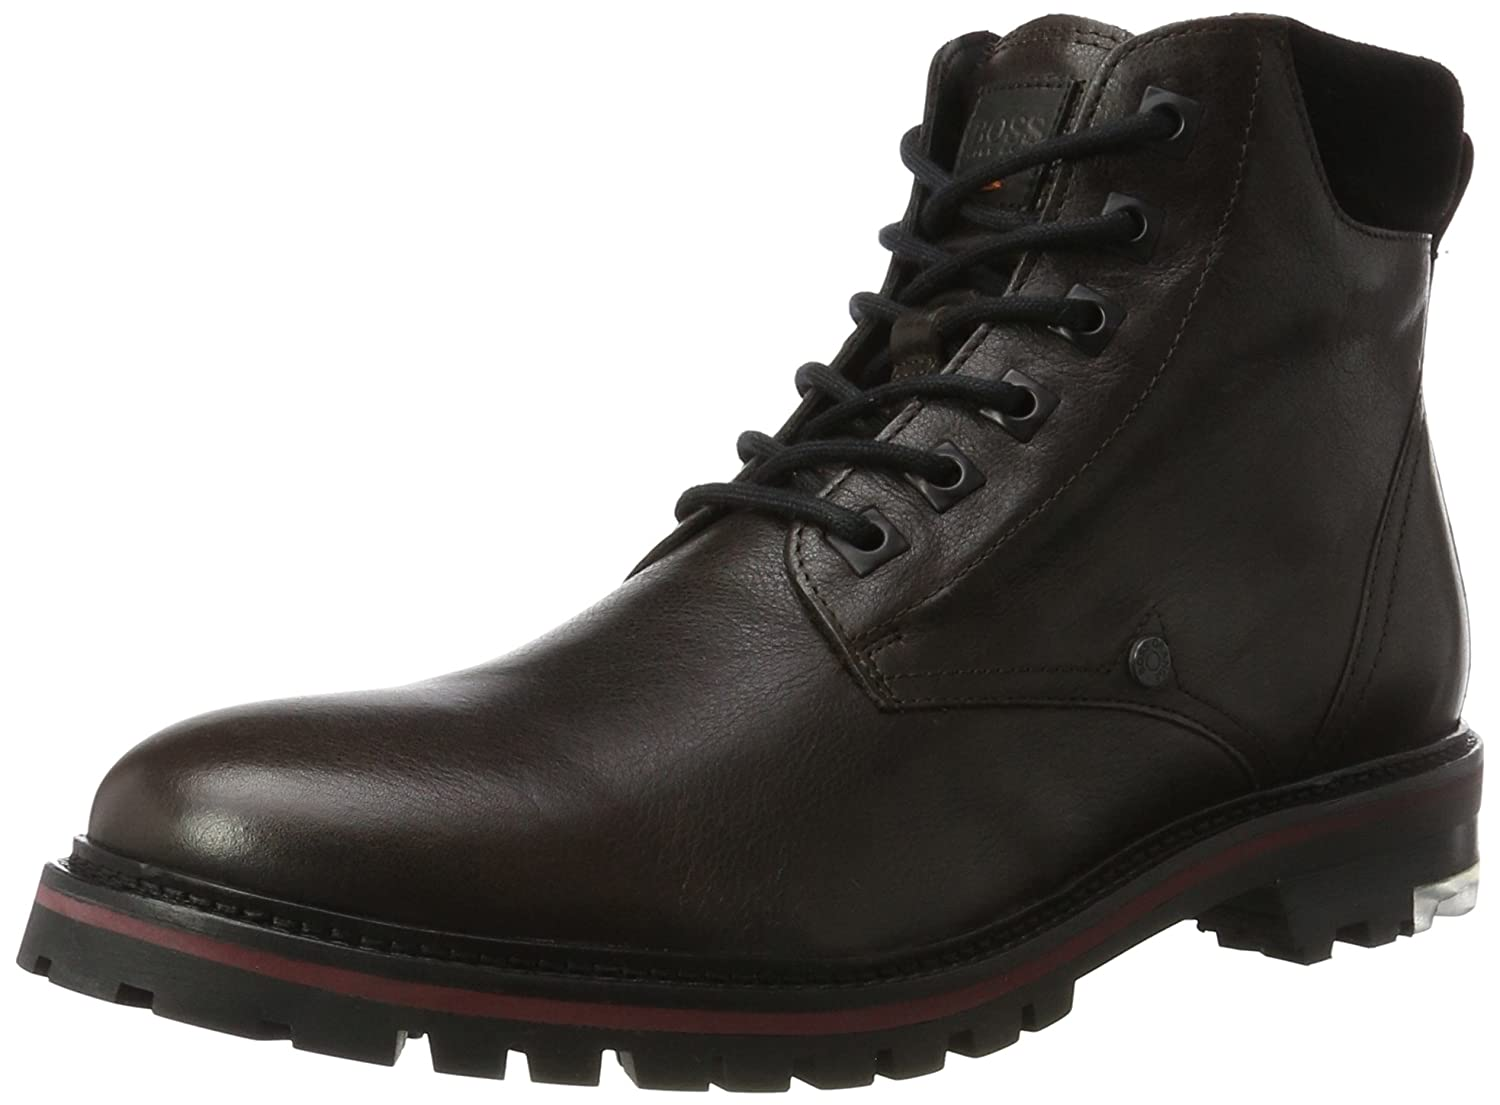 BOSS Herren Hero_halb_ltwsfur 10201445 01 Brown) Combat Boots, Braun (Dark Brown) 01 e0c169